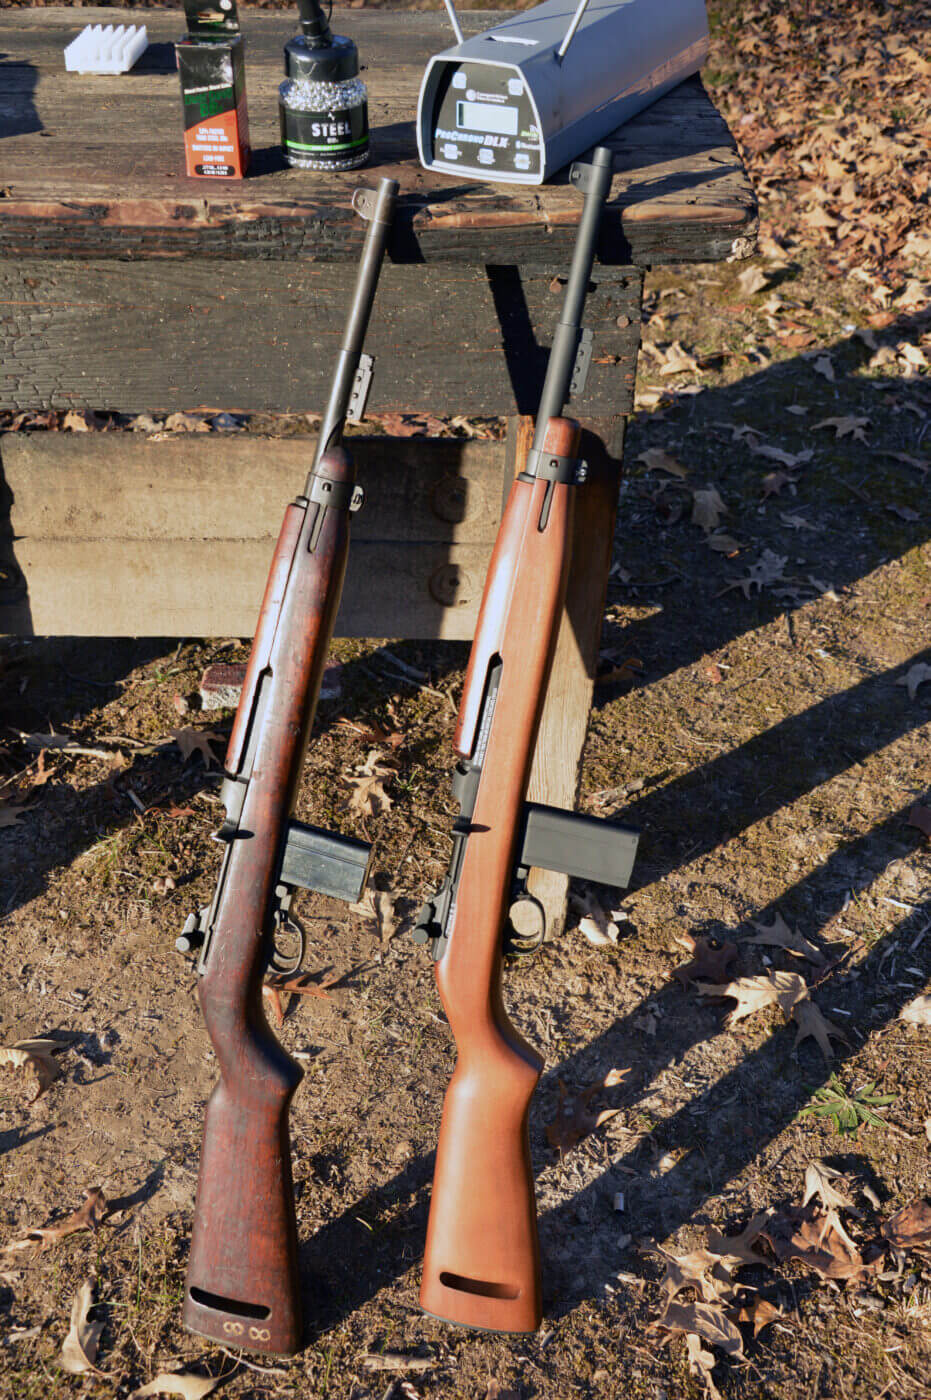 M1 Carbine BB gun compared to real rifle